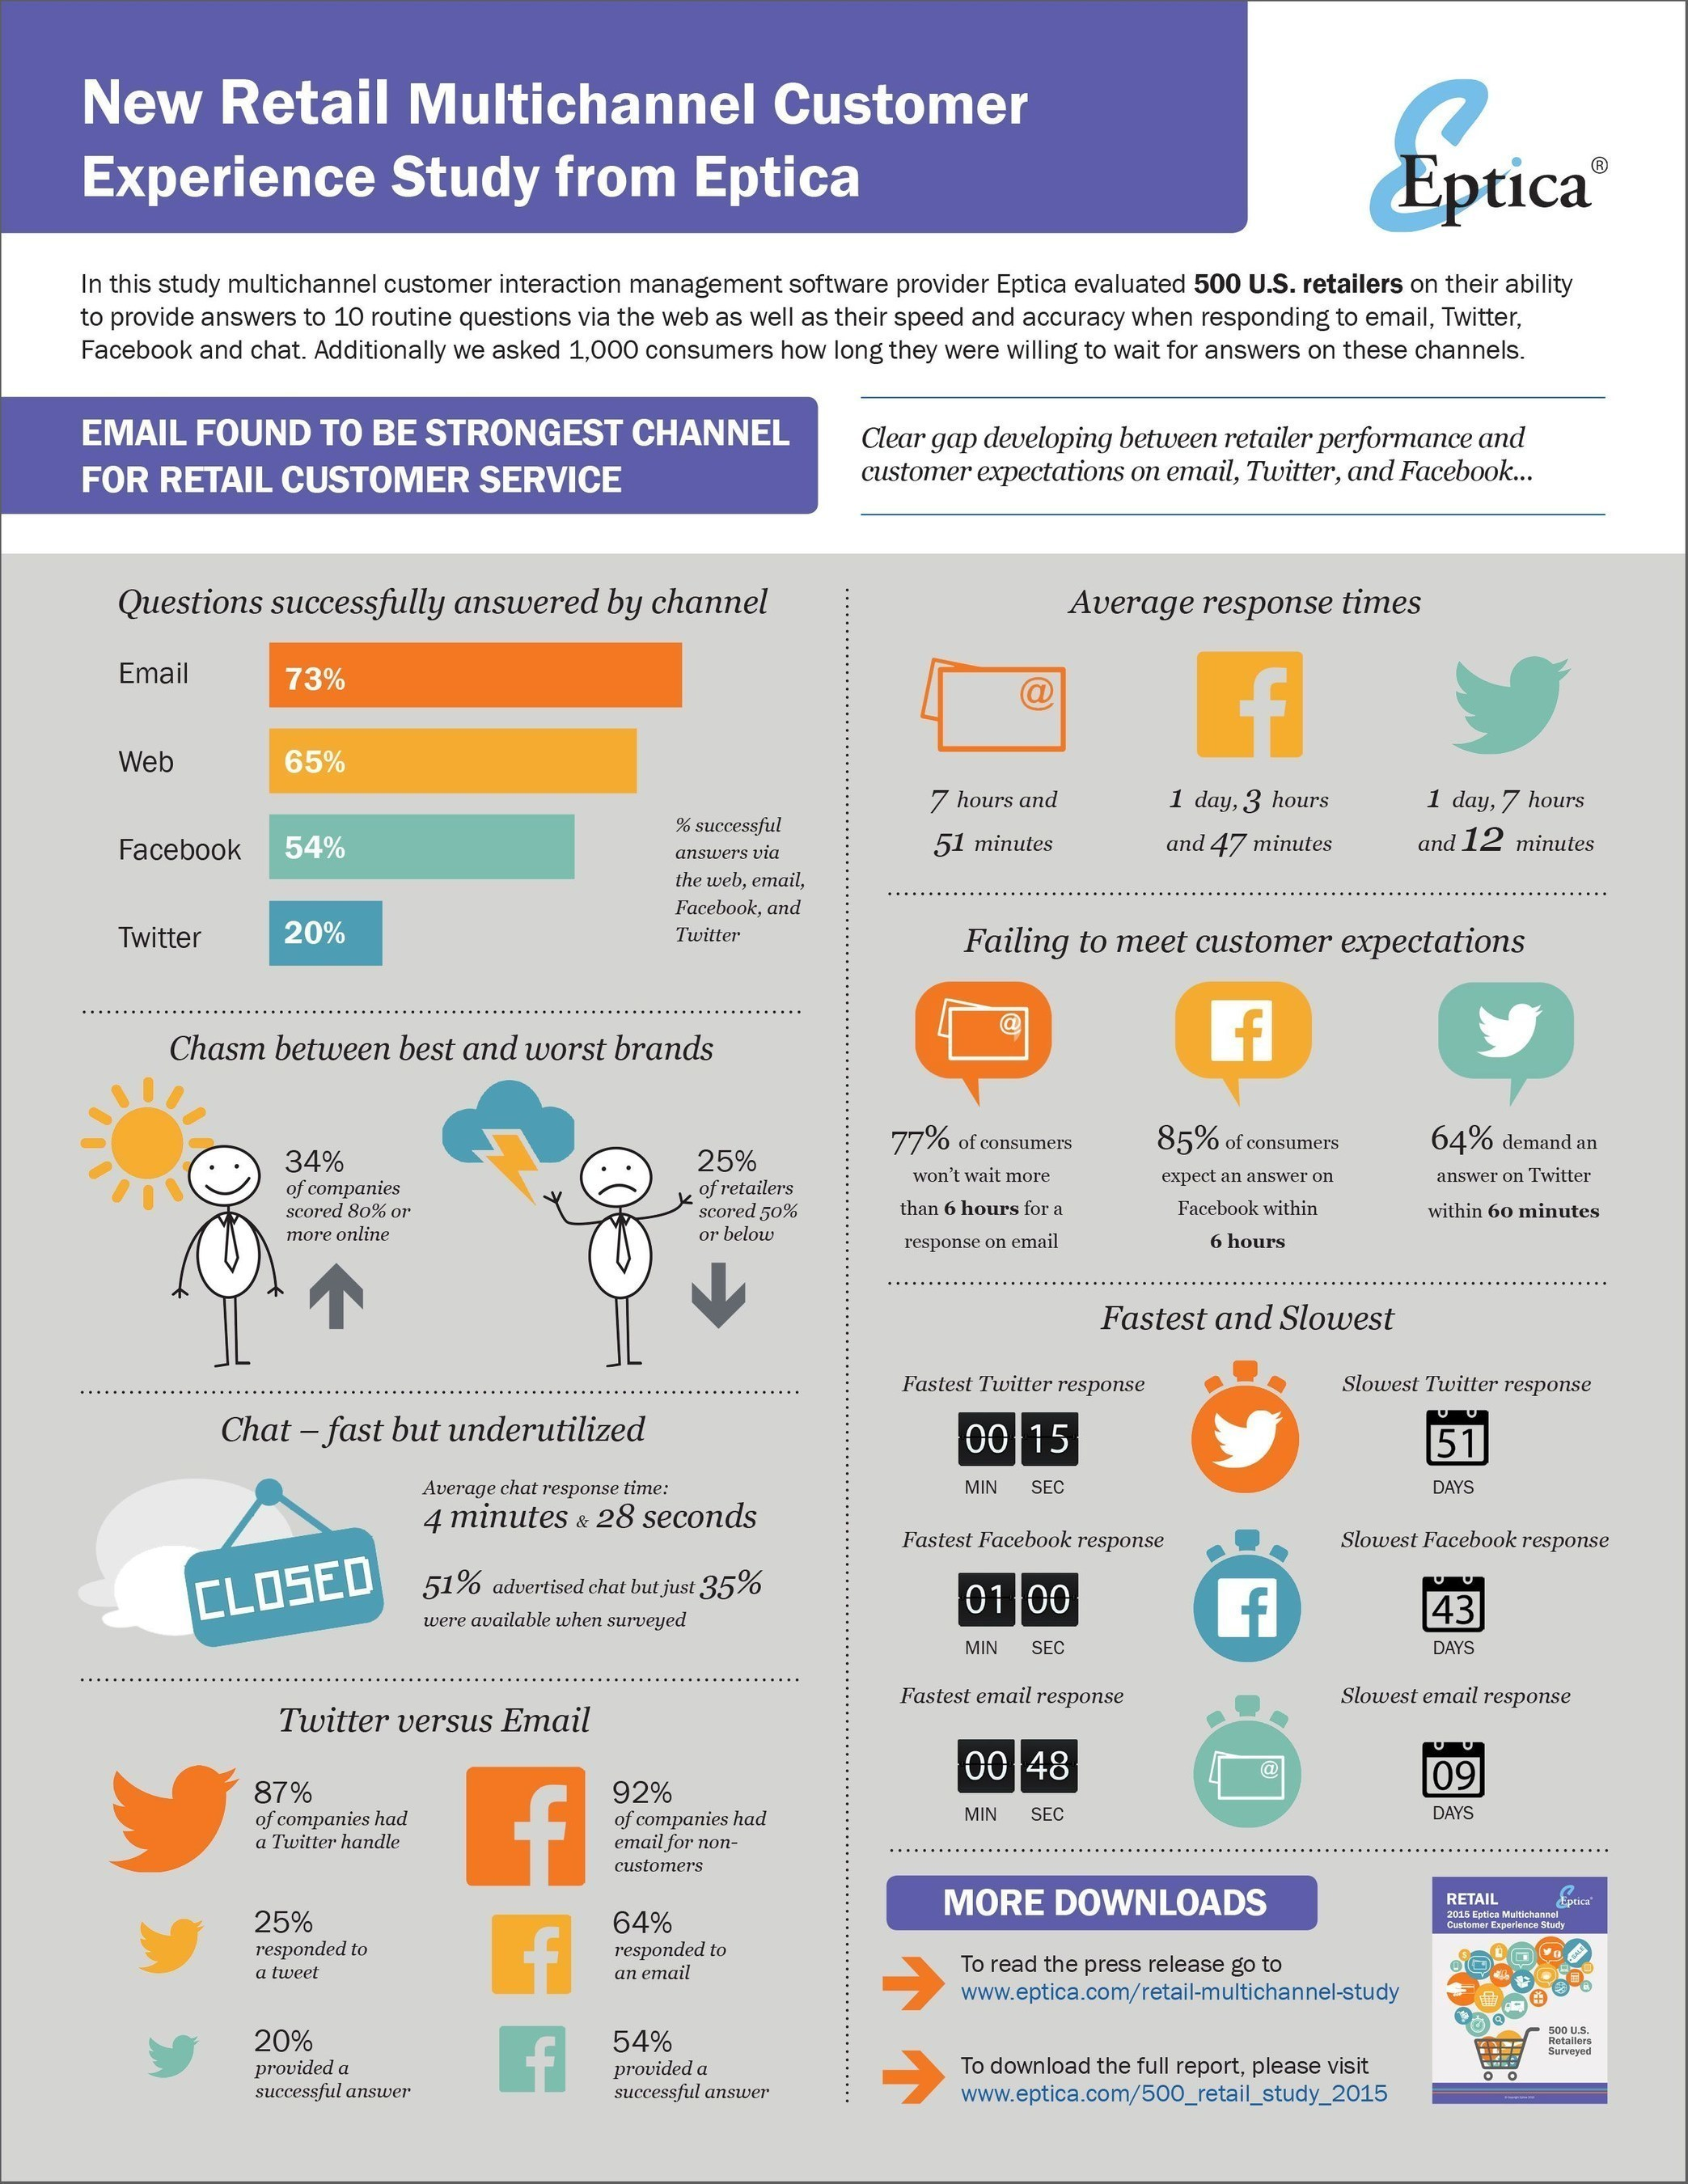 Email delivers the fastest and most accurate customer service in retail, far exceeding social media and other channels, according to new research from multichannel customer engagement software provider Eptica. Retailers surveyed could only answer 20% of questions sent via Twitter and 54% of Facebook messages - in contrast, they replied successfully to nearly three quarters (73%) of emails received.